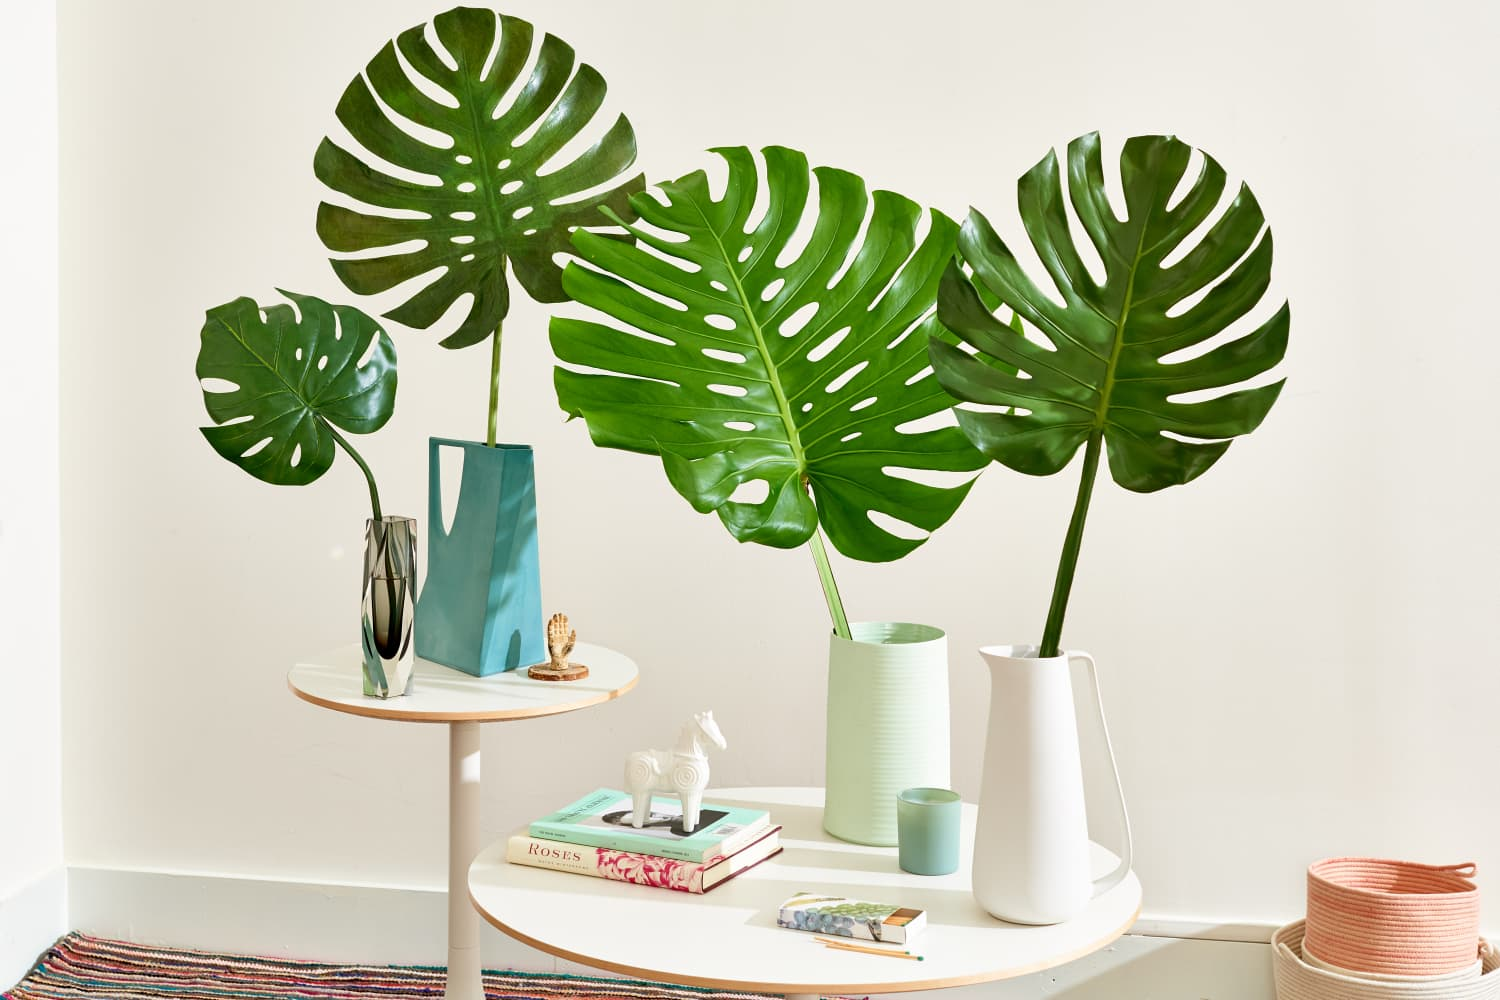 How to Choose Fake Plants That Actually Look Good, According to Home Stagers